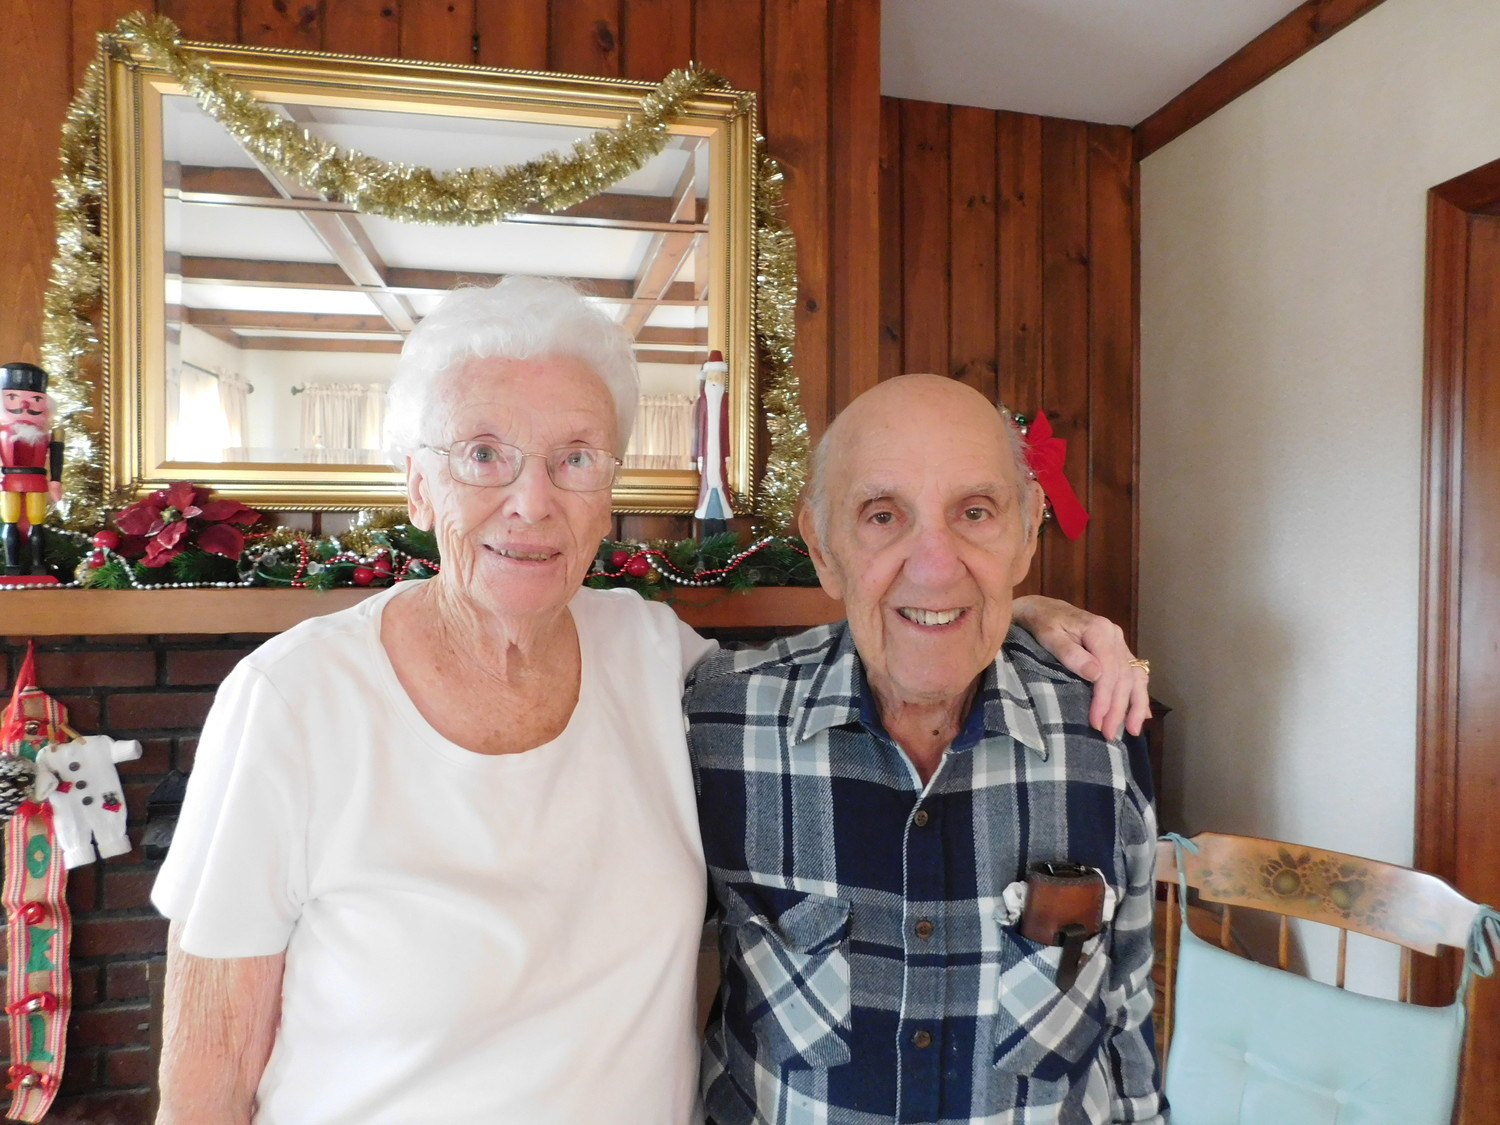 Gloria and Charlie Chapman, 92- and 91-year-old volunteers and world travelers, are the Herald Life's 2017 People of the Year.